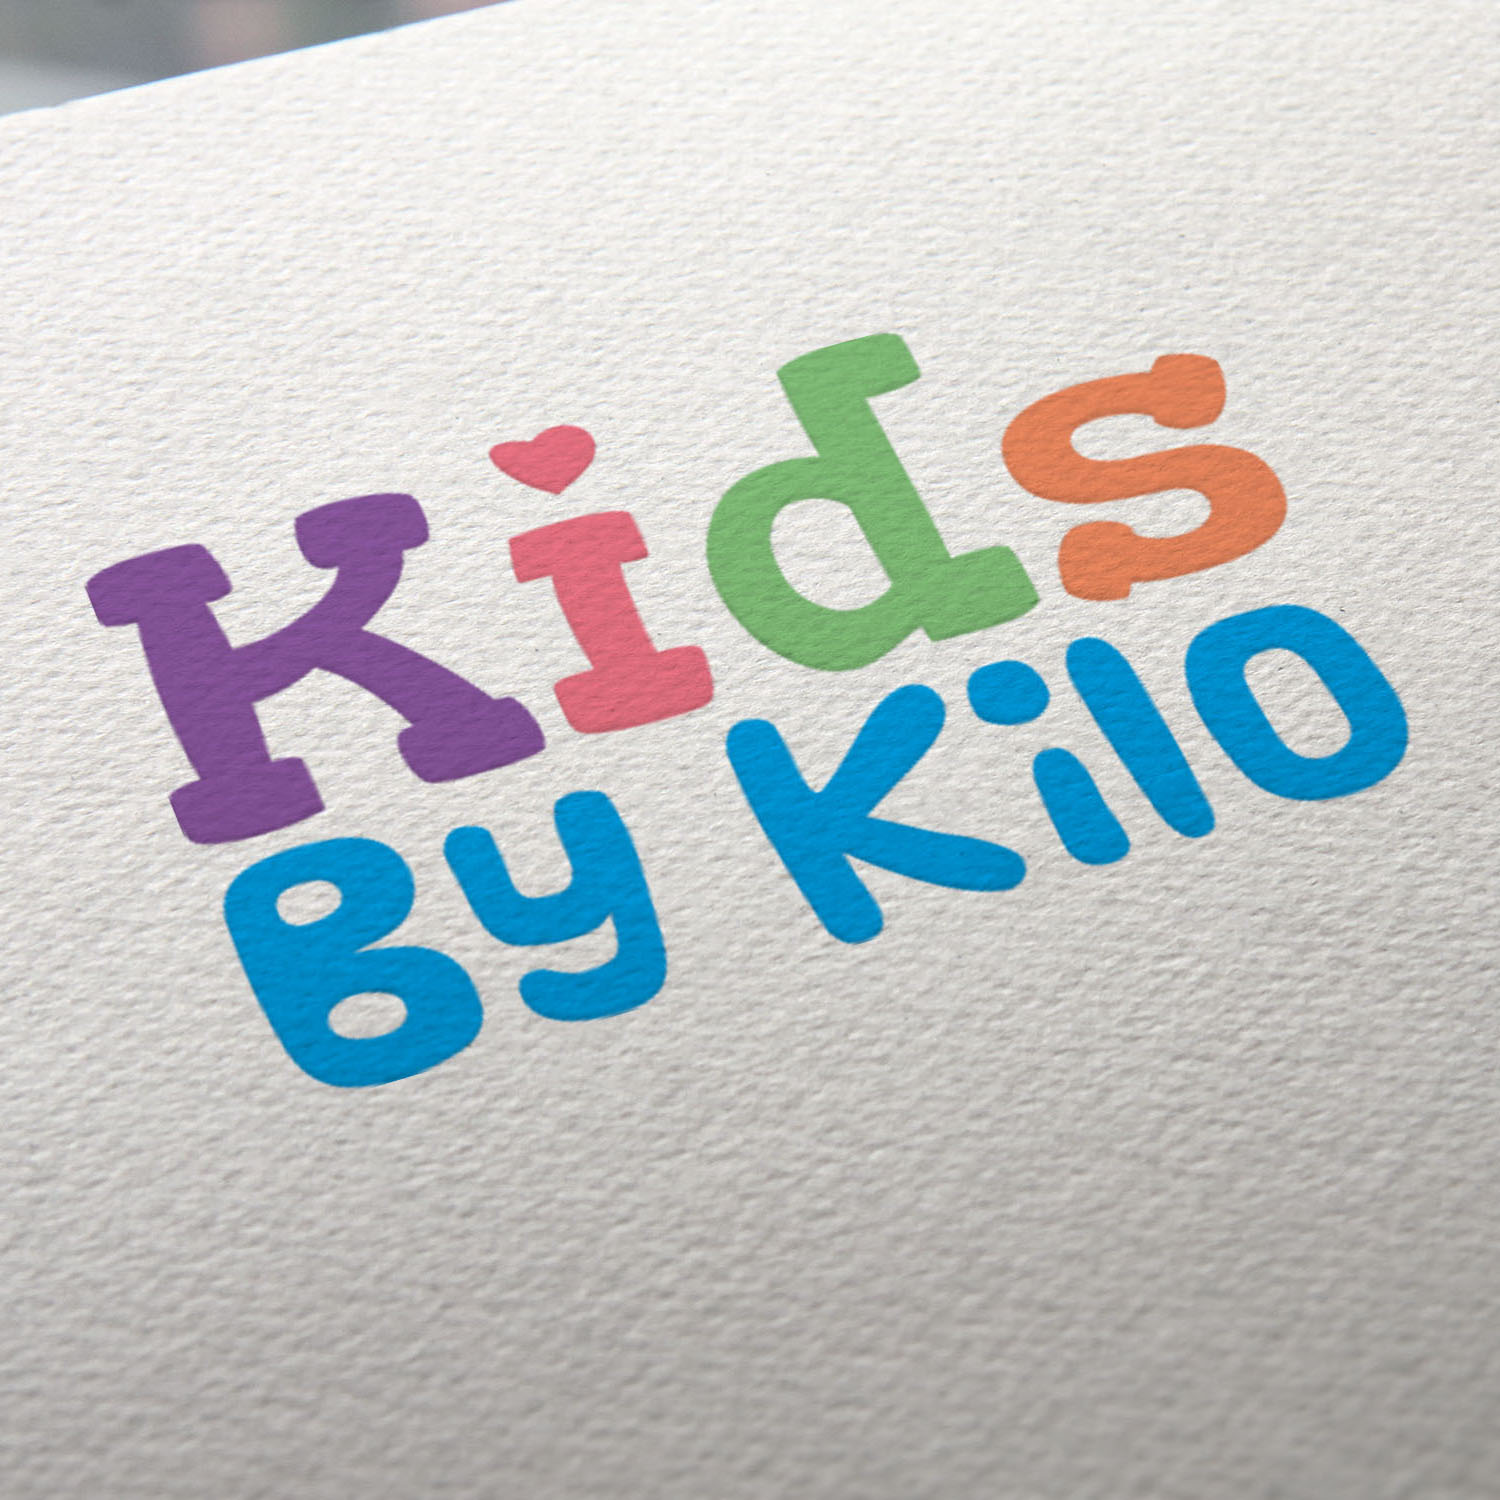 kids by kilo logo